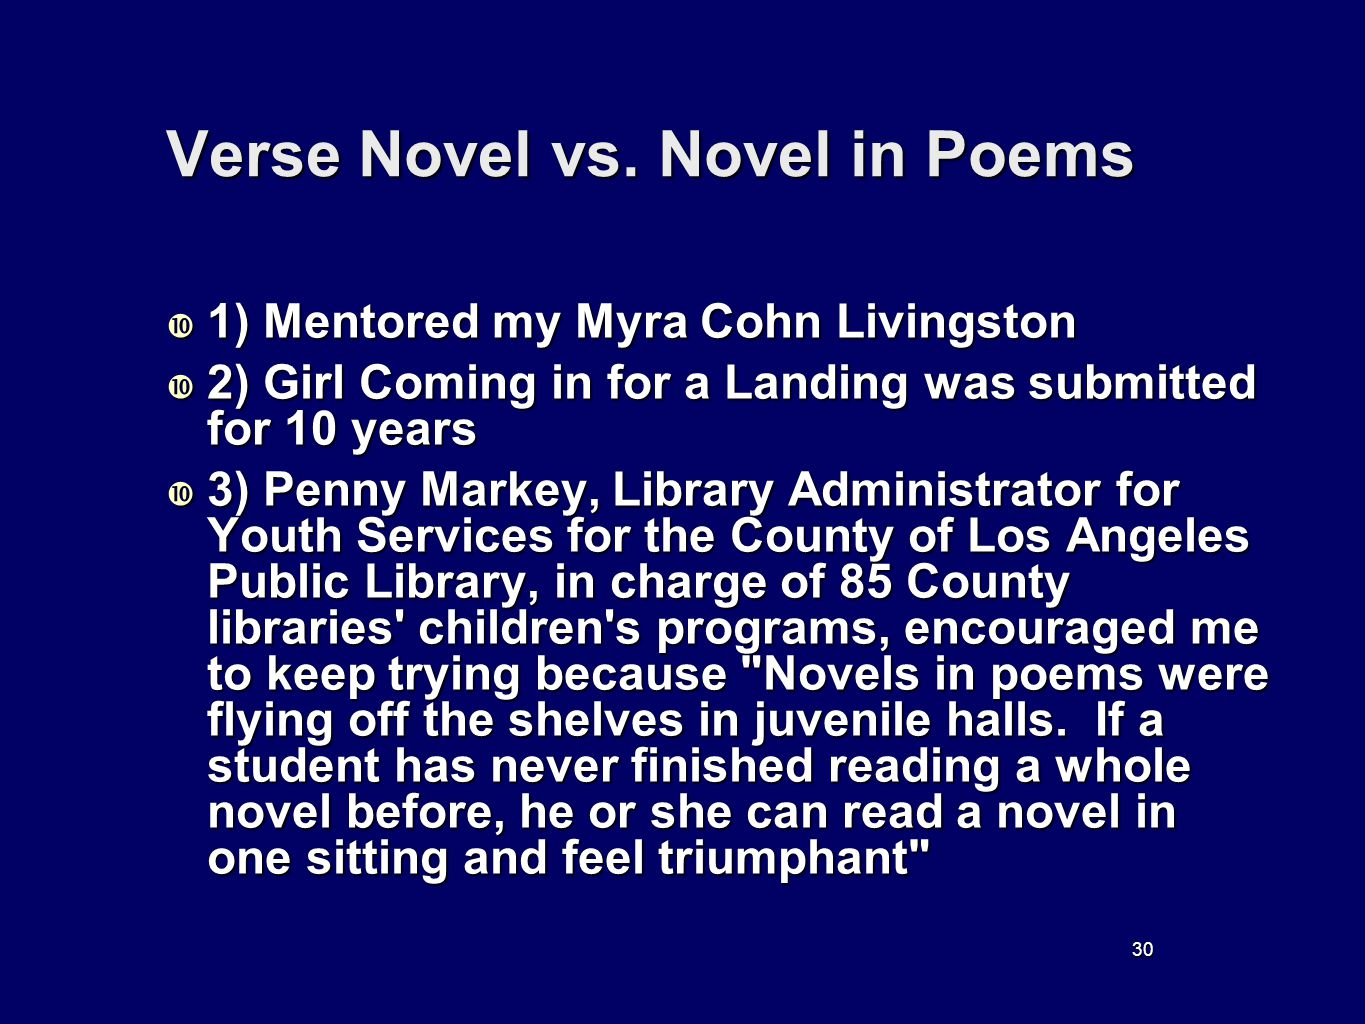 30 Verse Novel vs. Novel in Poems 1) Mentored my Myra Cohn Livingston 1) Mentored my Myra Cohn Livingston 2) Girl Coming in for a Landing was submitte